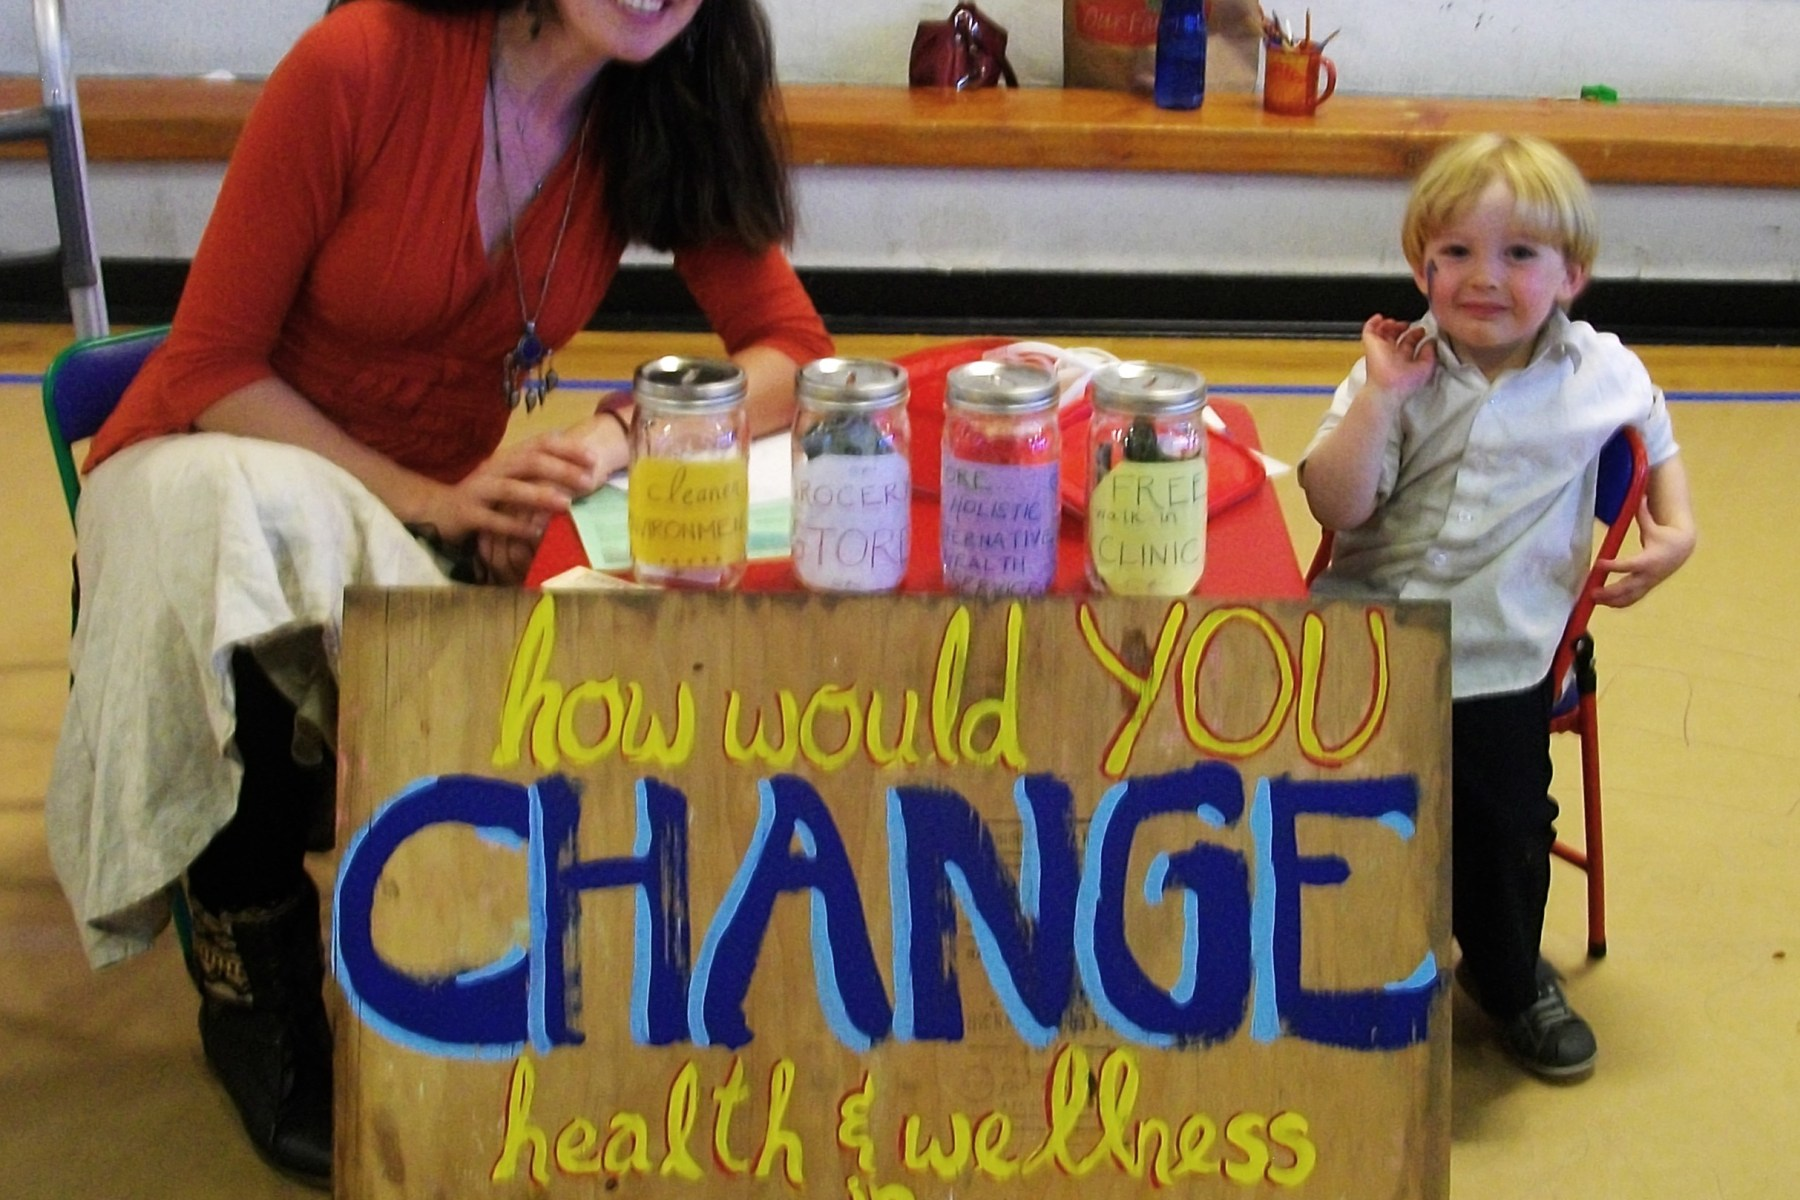 woman and small child with painted sign: How would you change health and wellness in Gilpin County?